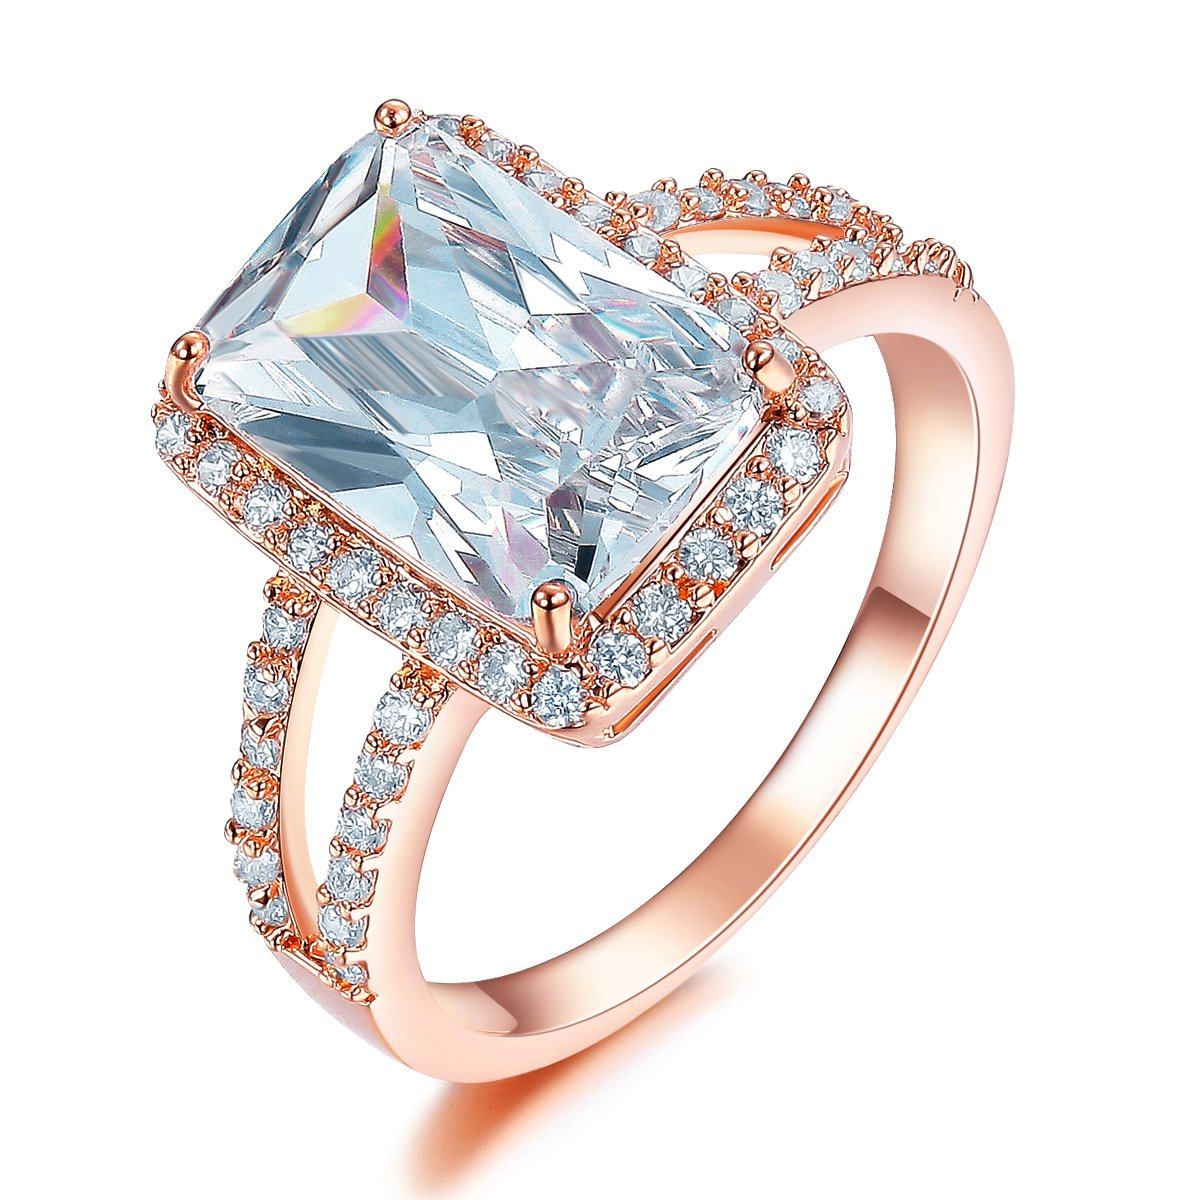 SHINCO Bella Lotus 4.5ct Radiant Cut CZ 18k Rose Gold Plated Vintage Wedding Band Engagement Rings Gifts for Graduation, Size 8